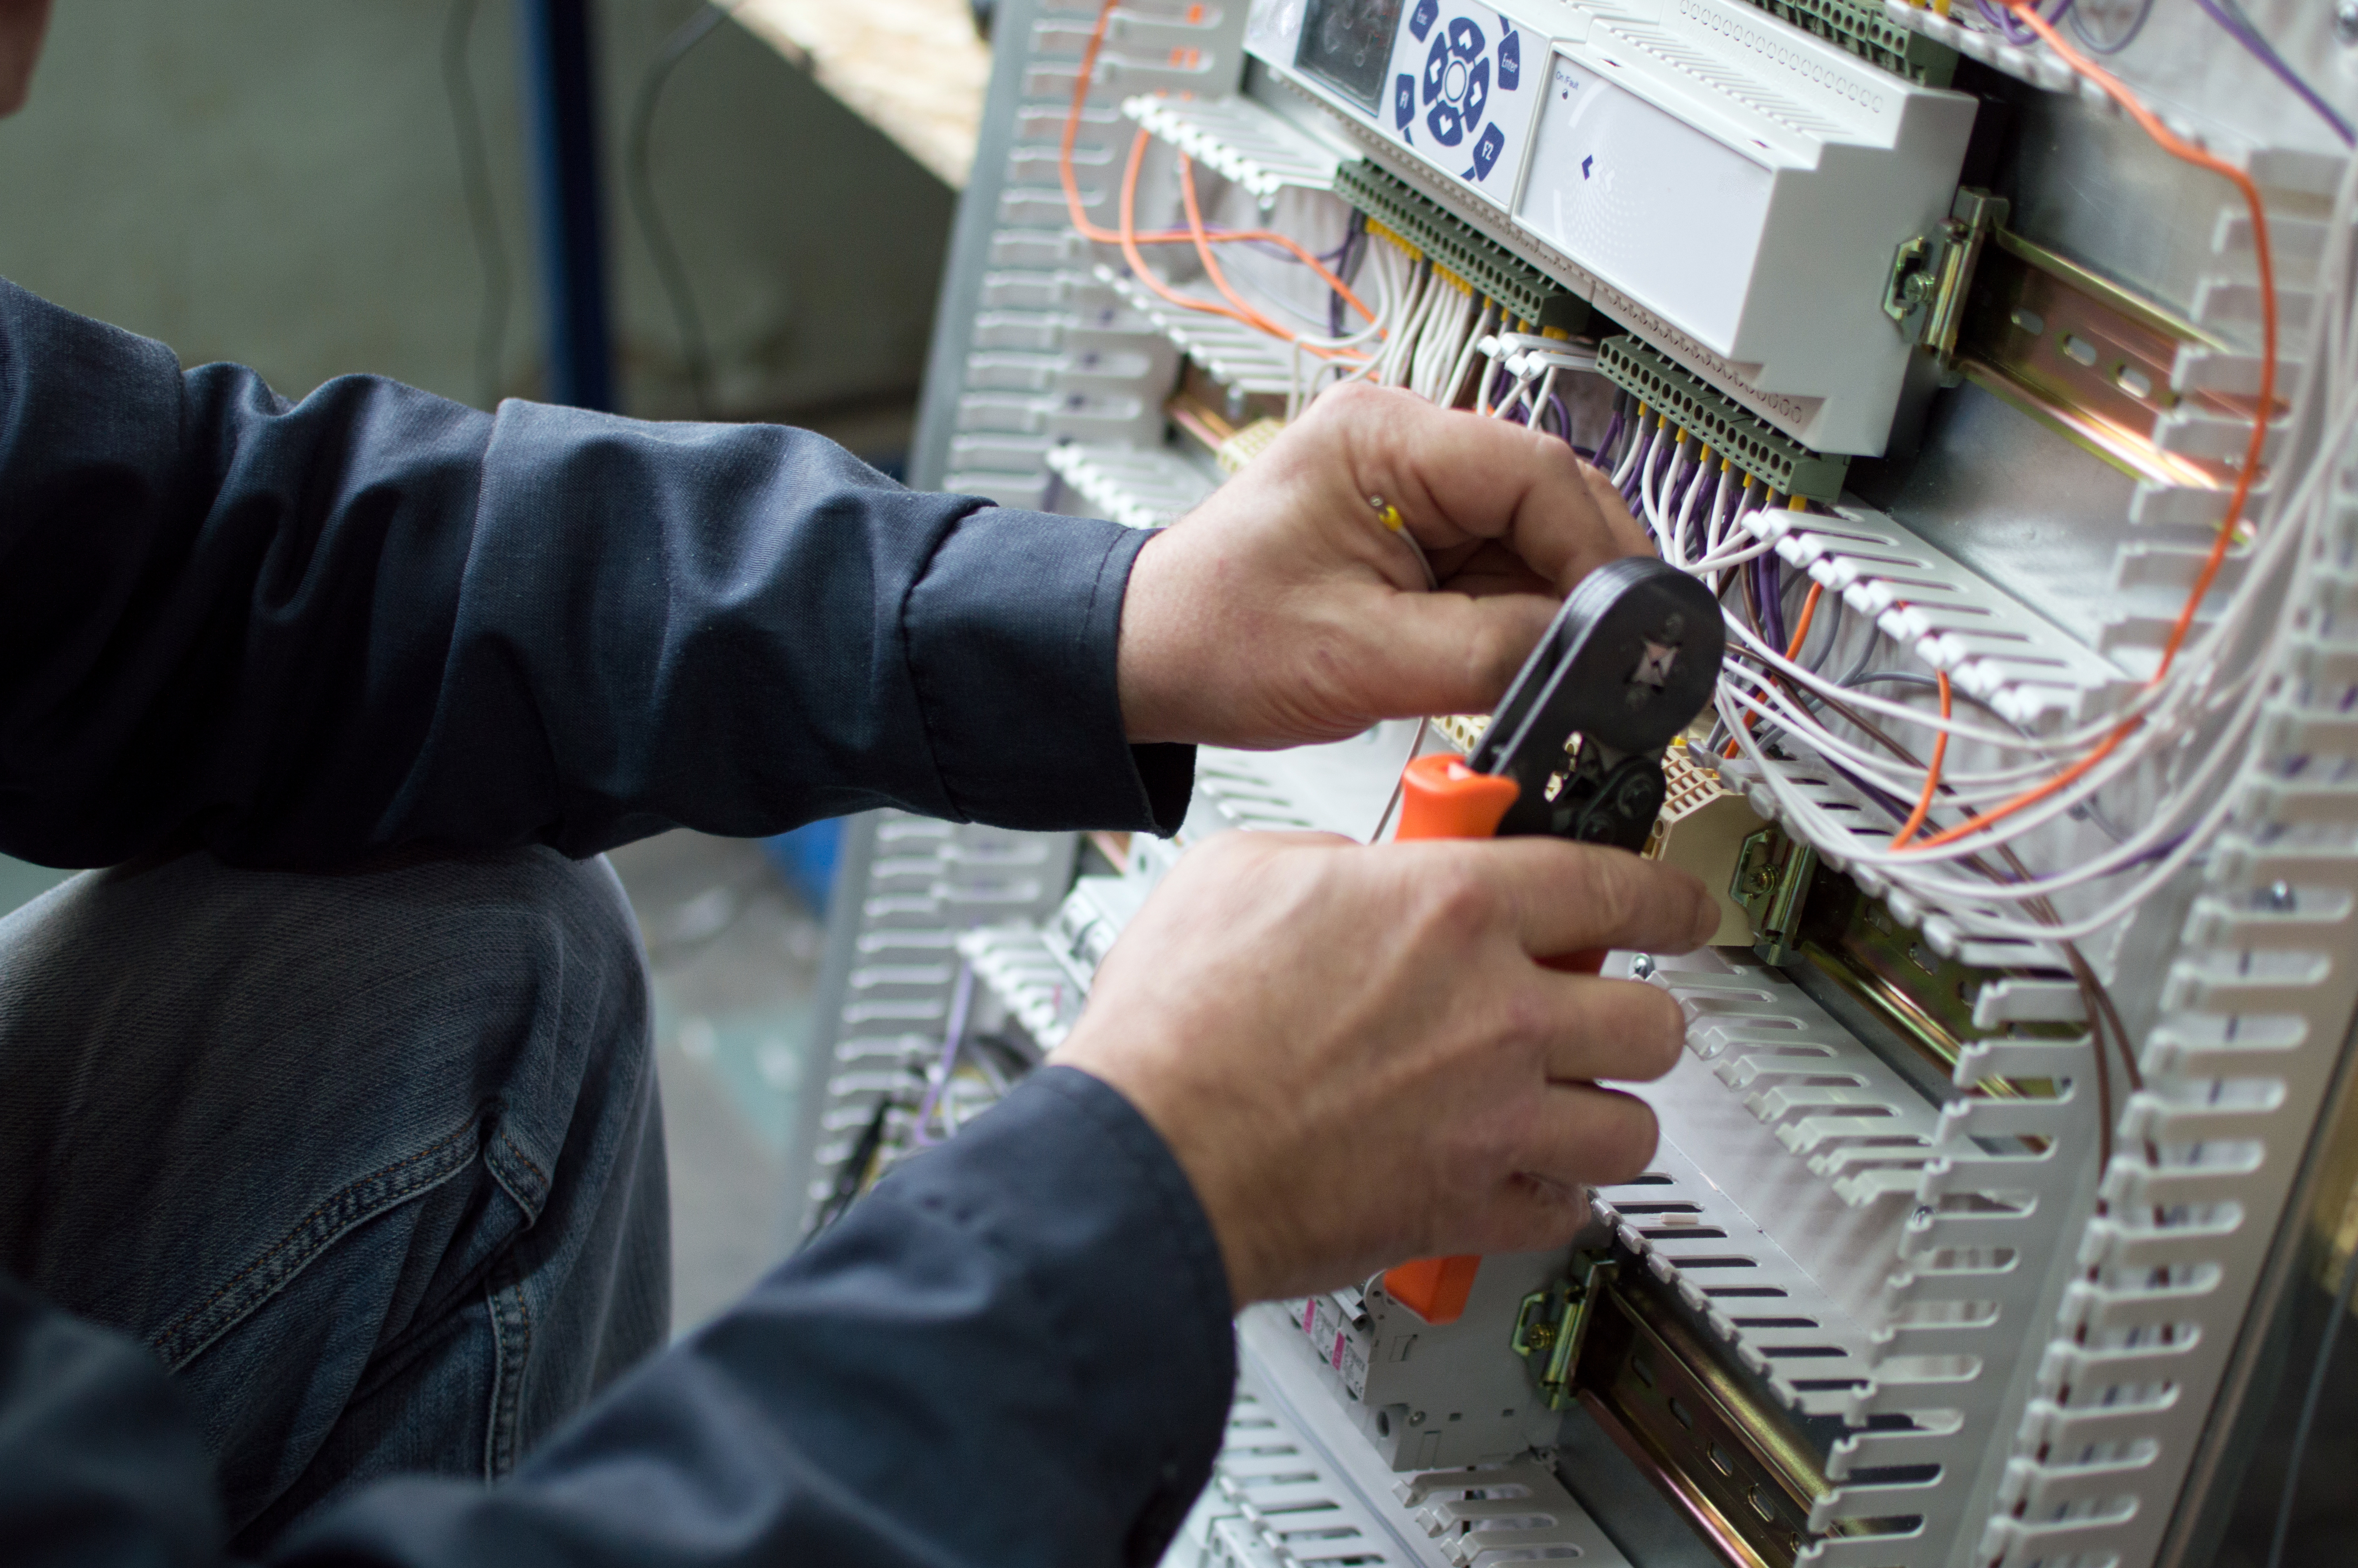 Electrician assembling industrial control cubicle in workshop.